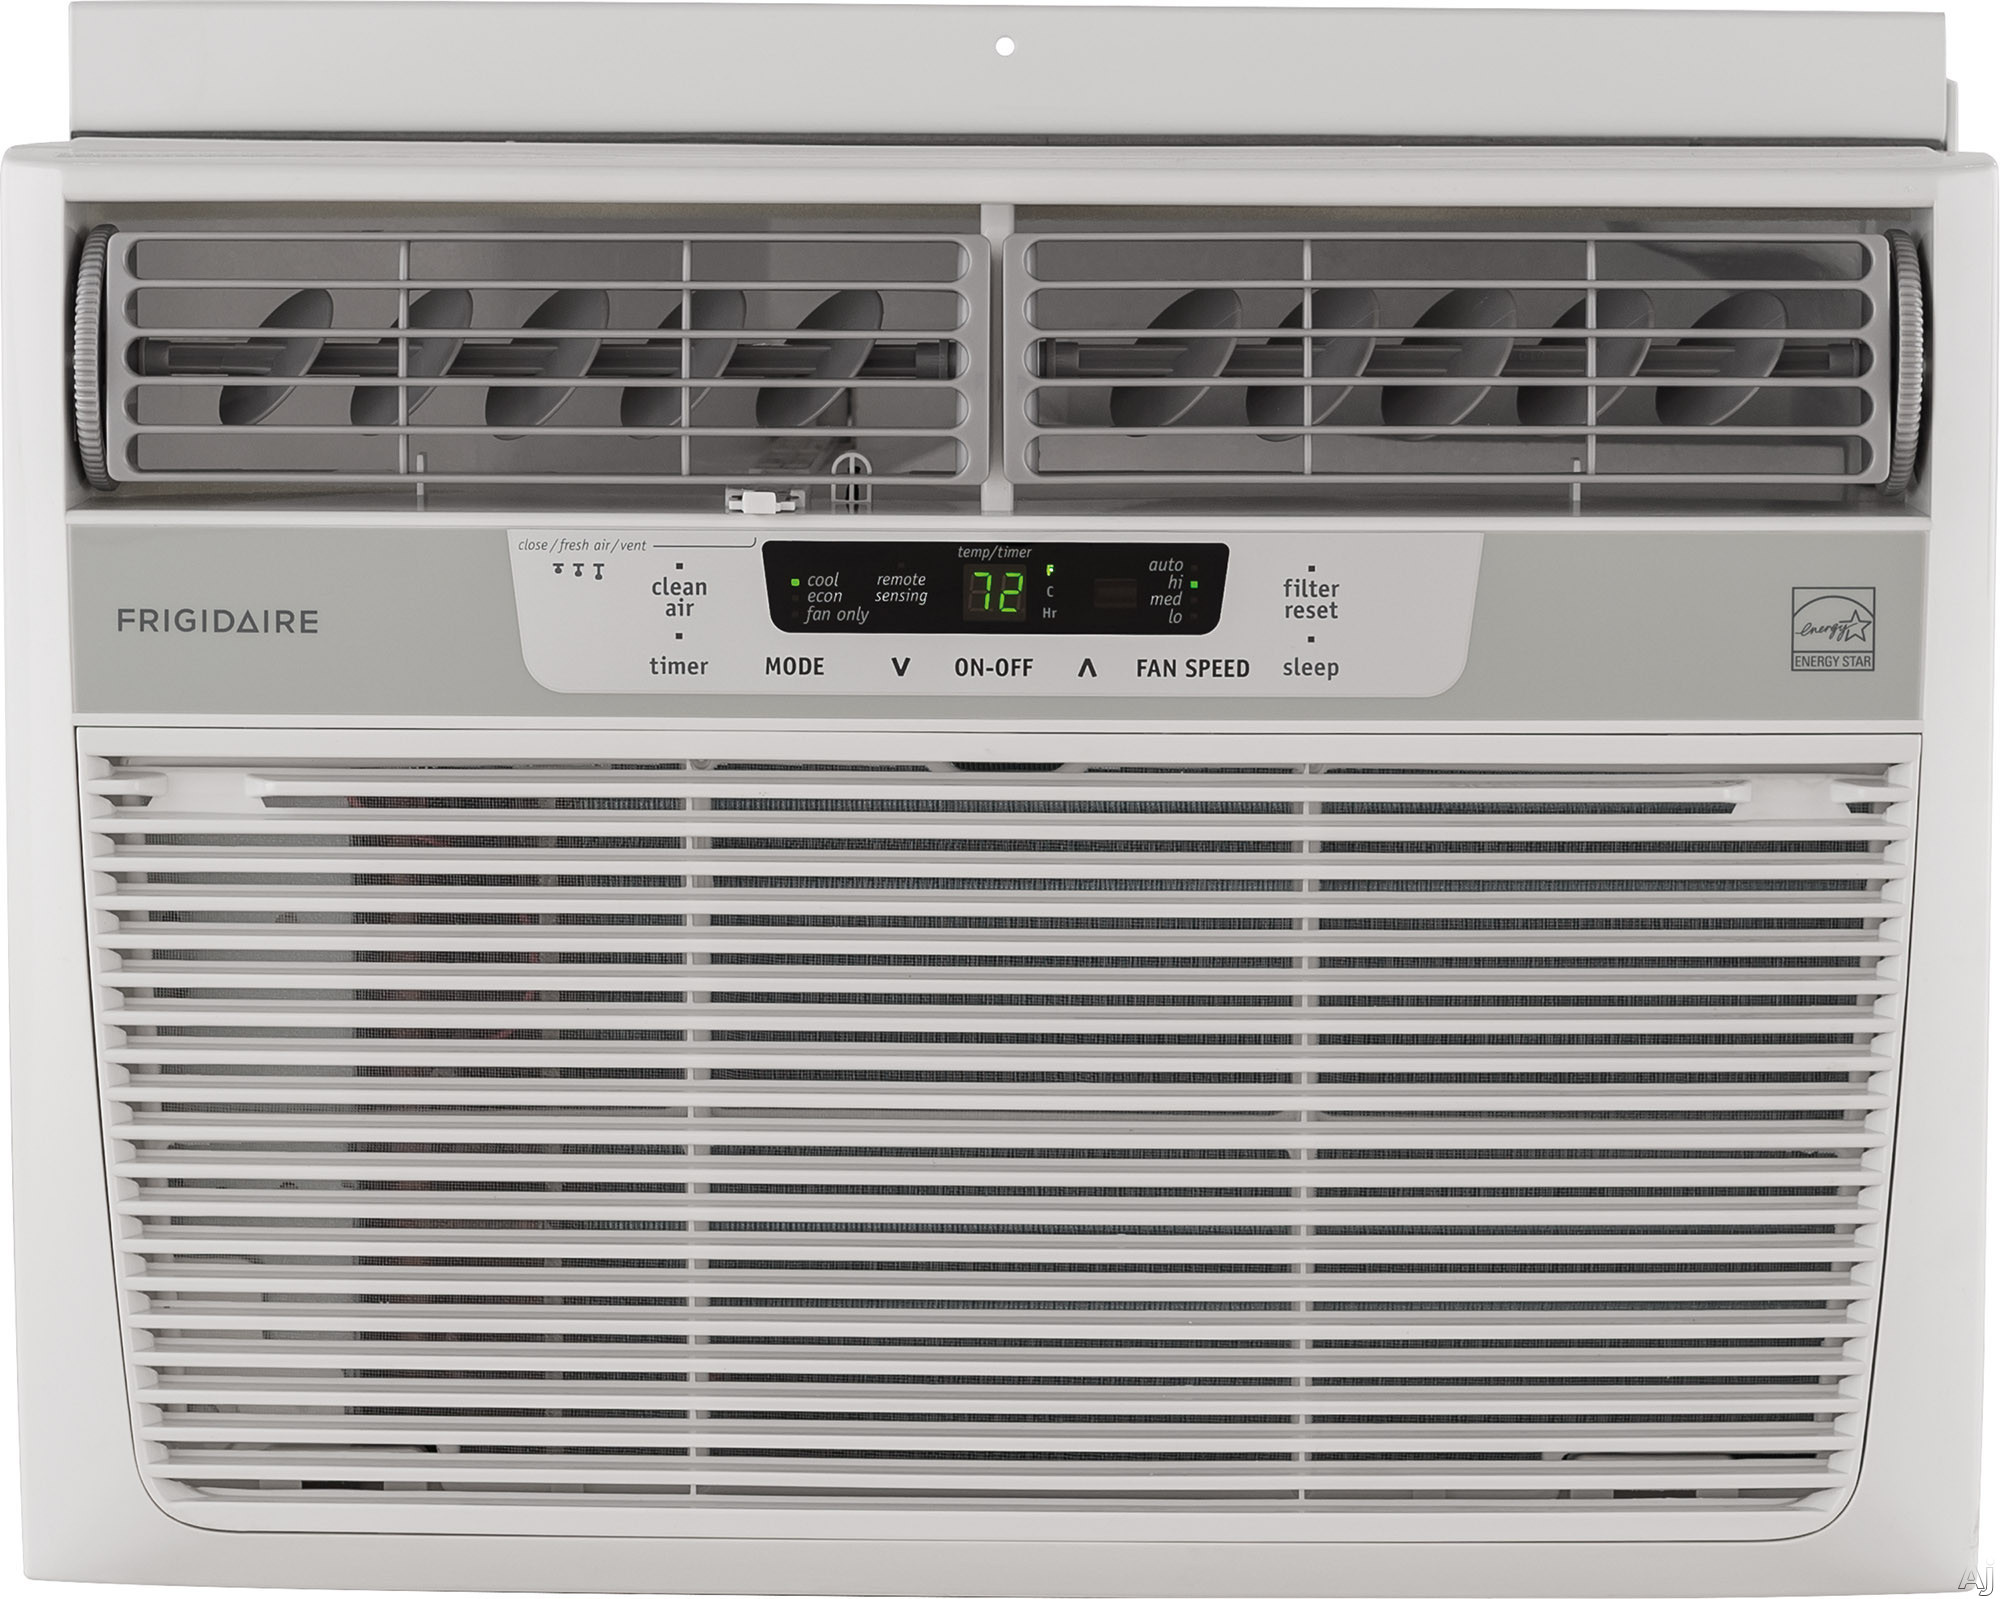 Frigidaire FFRE1233S1 12 000 BTU Compact Air Conditioner with 285 CFM 3 Fan Speeds Effortless Remote Temperature Control 24 Hour Timer Energy Saver Mode Clean Air Ionizer Effortless Clean Filter Effor